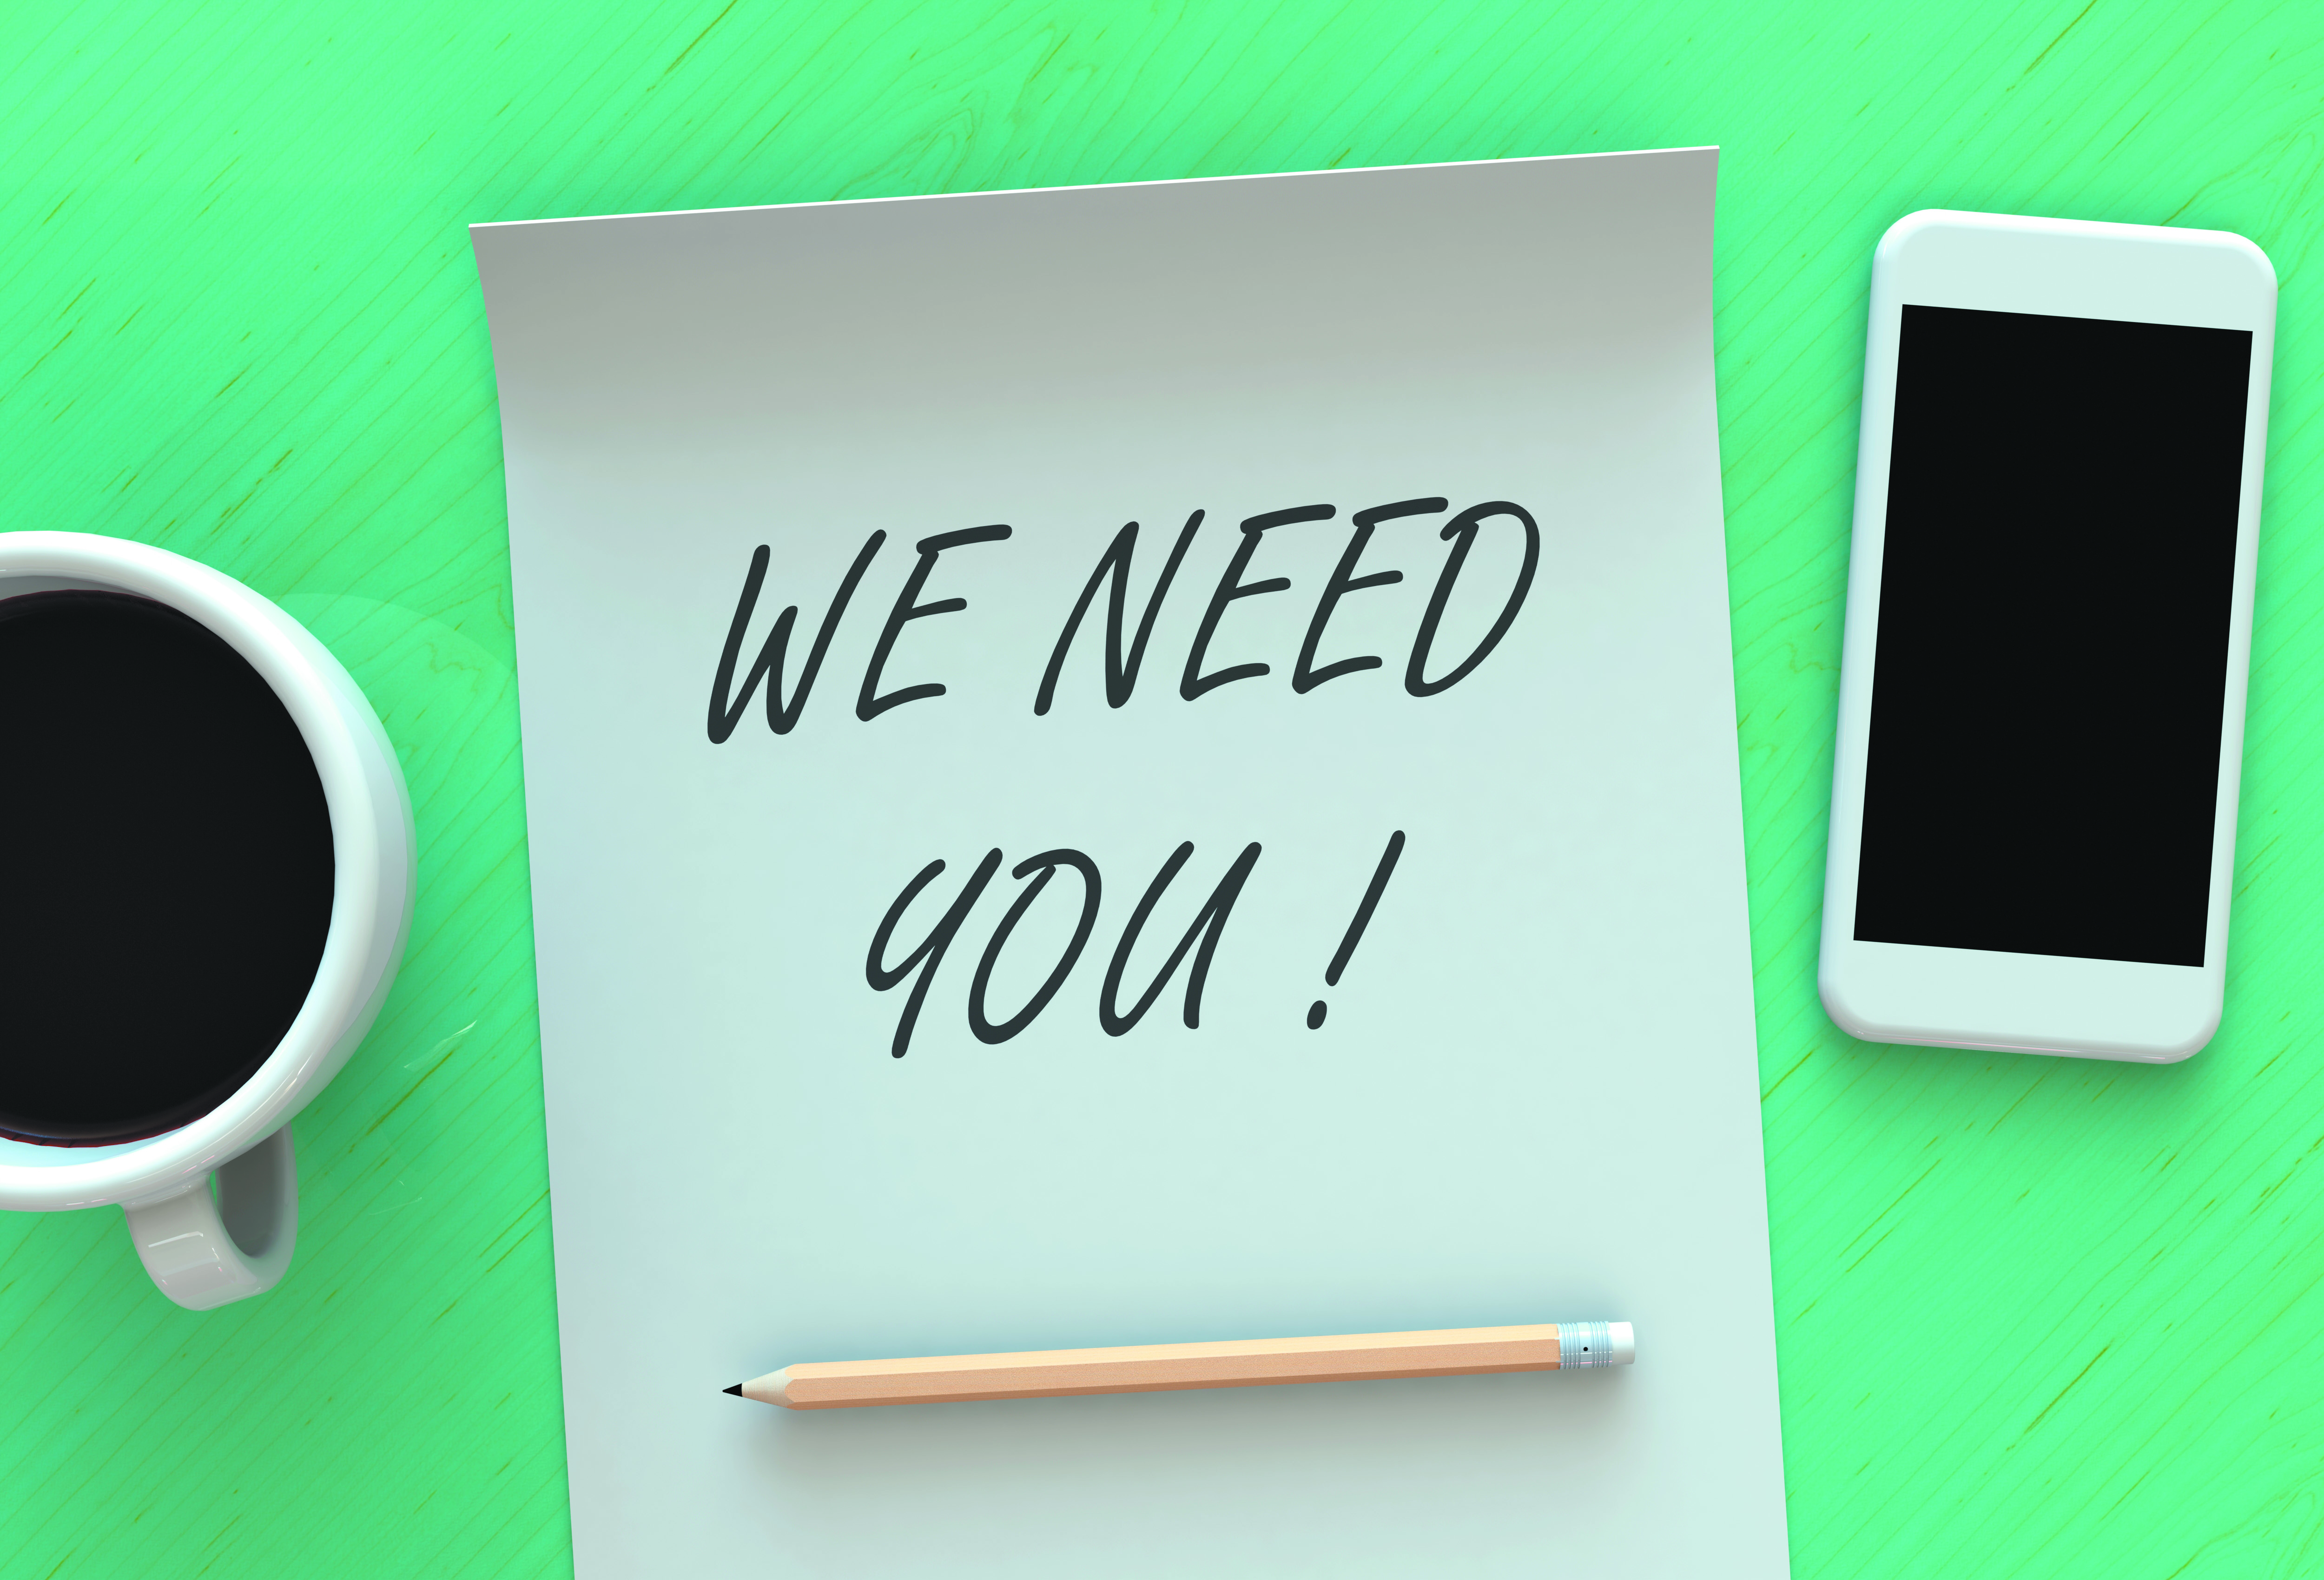 WE NEED YOU, message on paper, smart phone and coffee on table